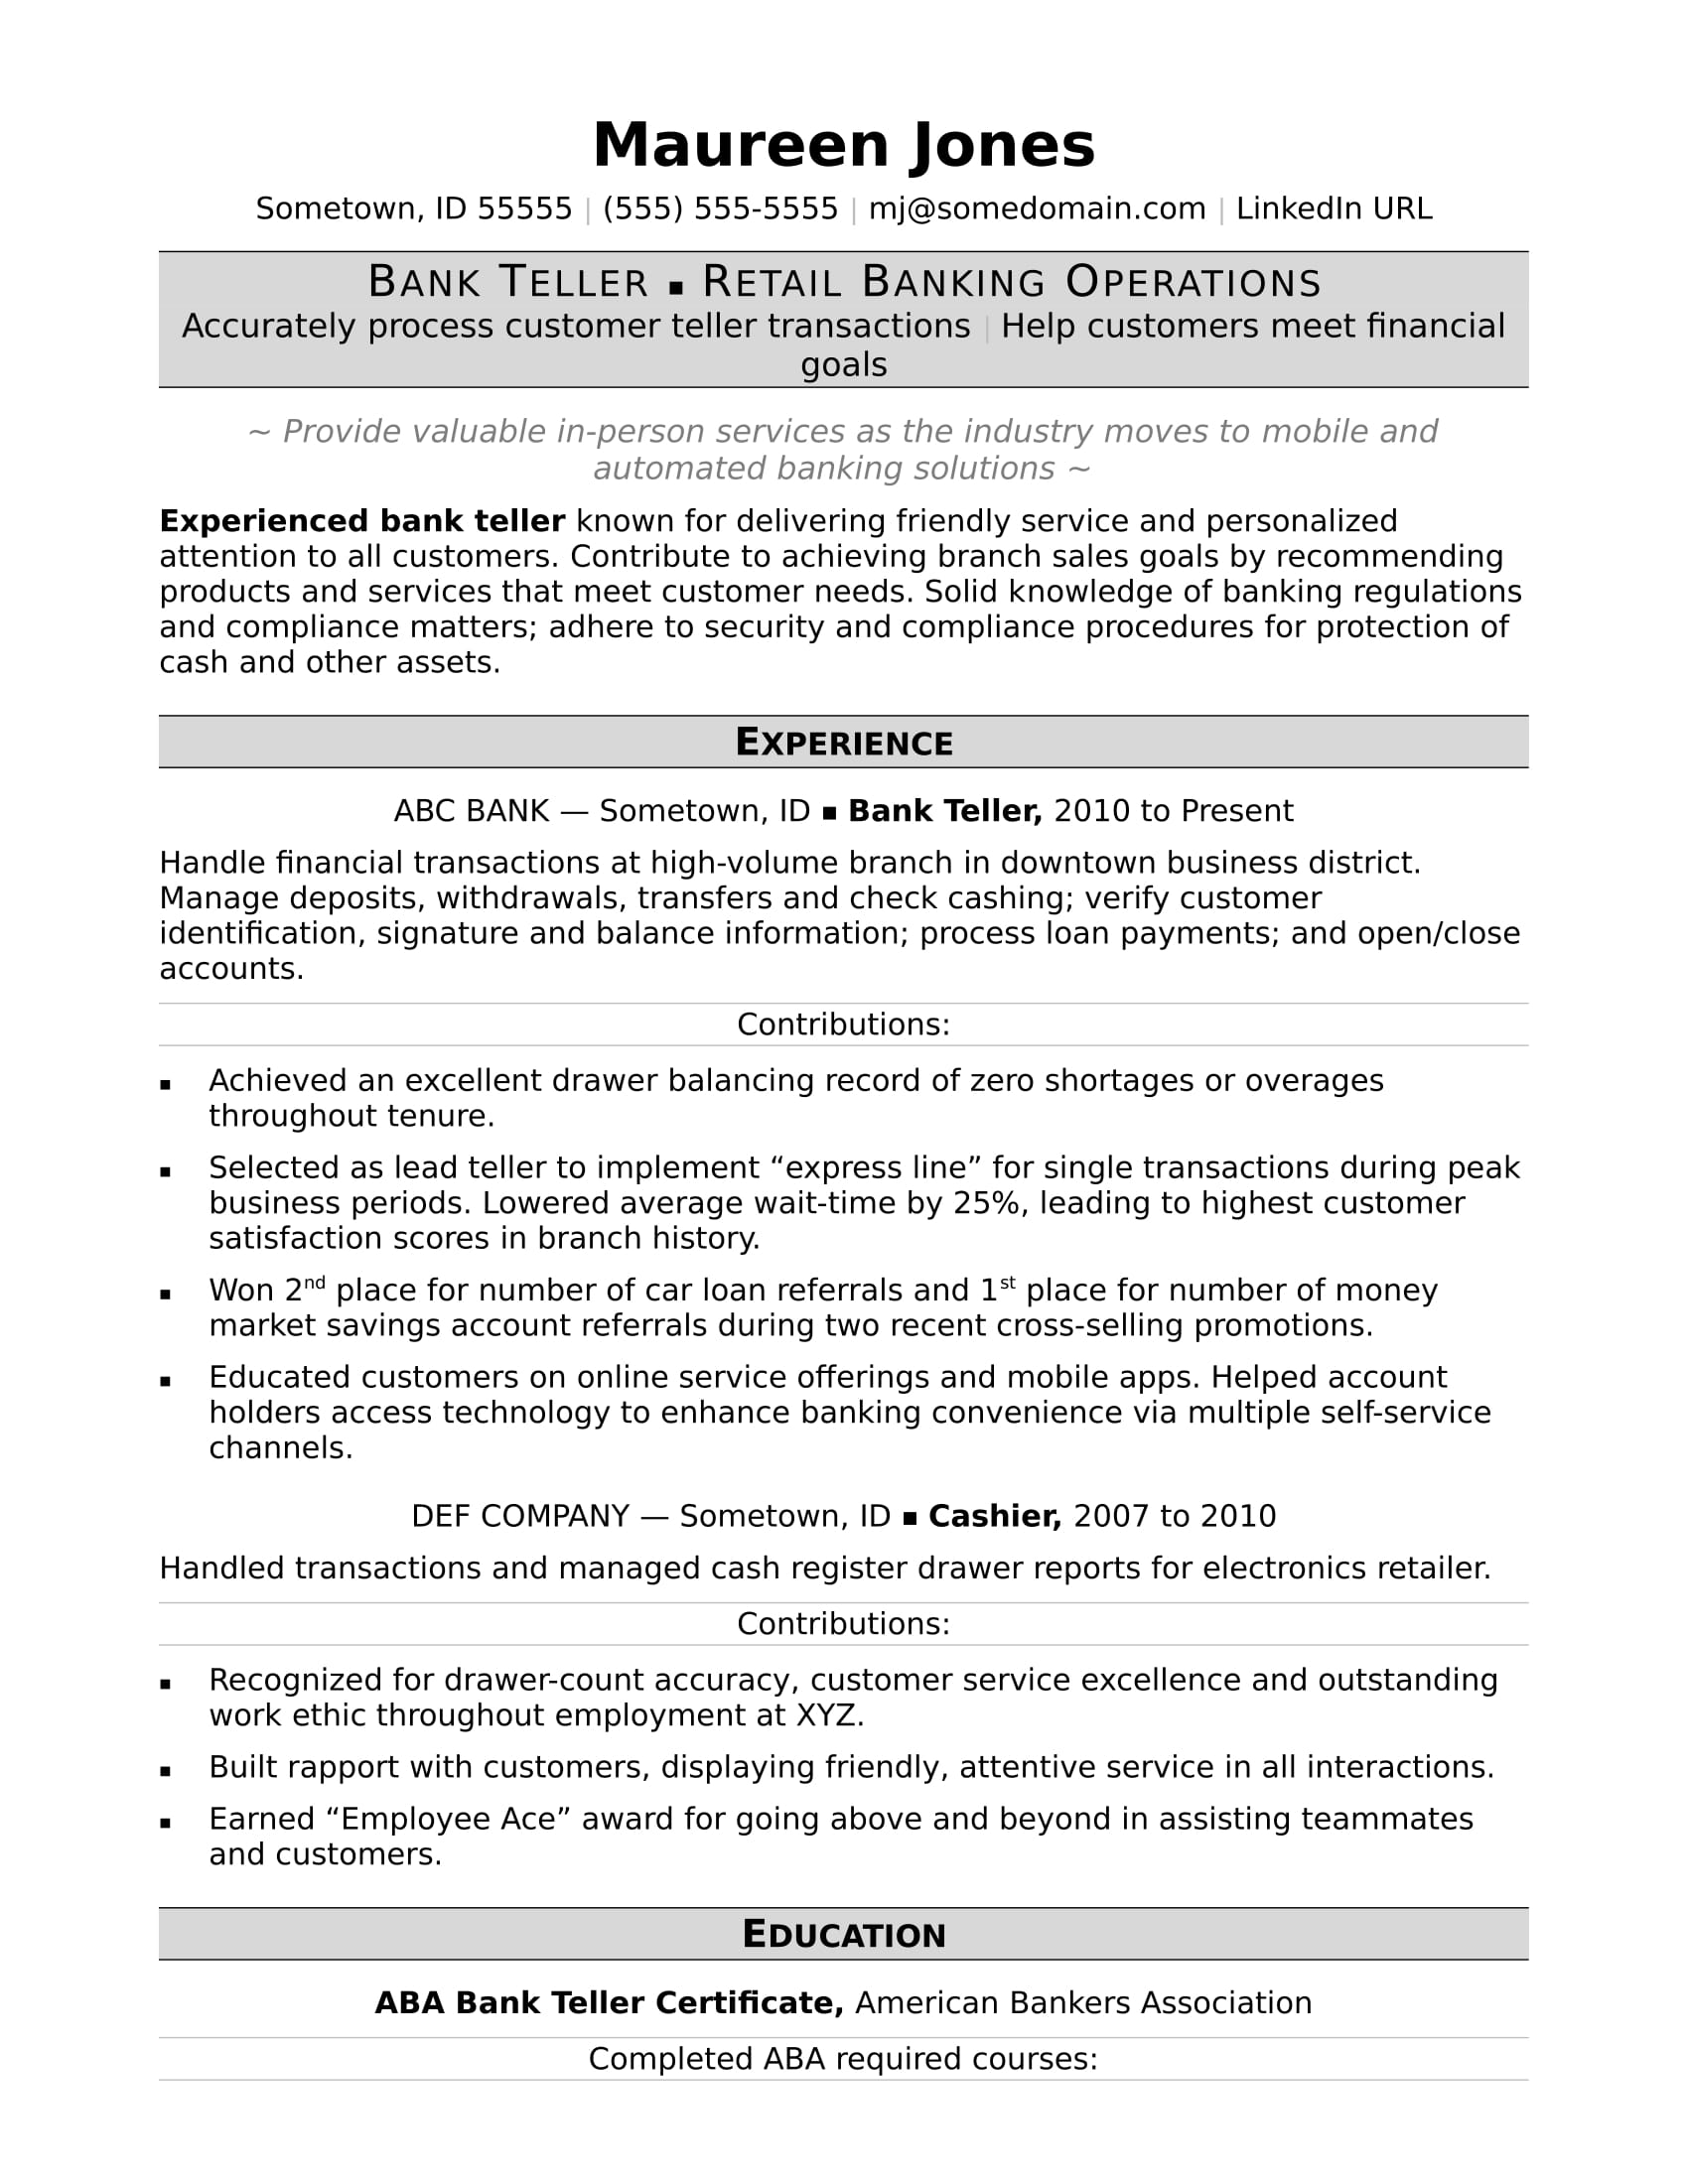 Bank Teller Resume Sample | Monster.com